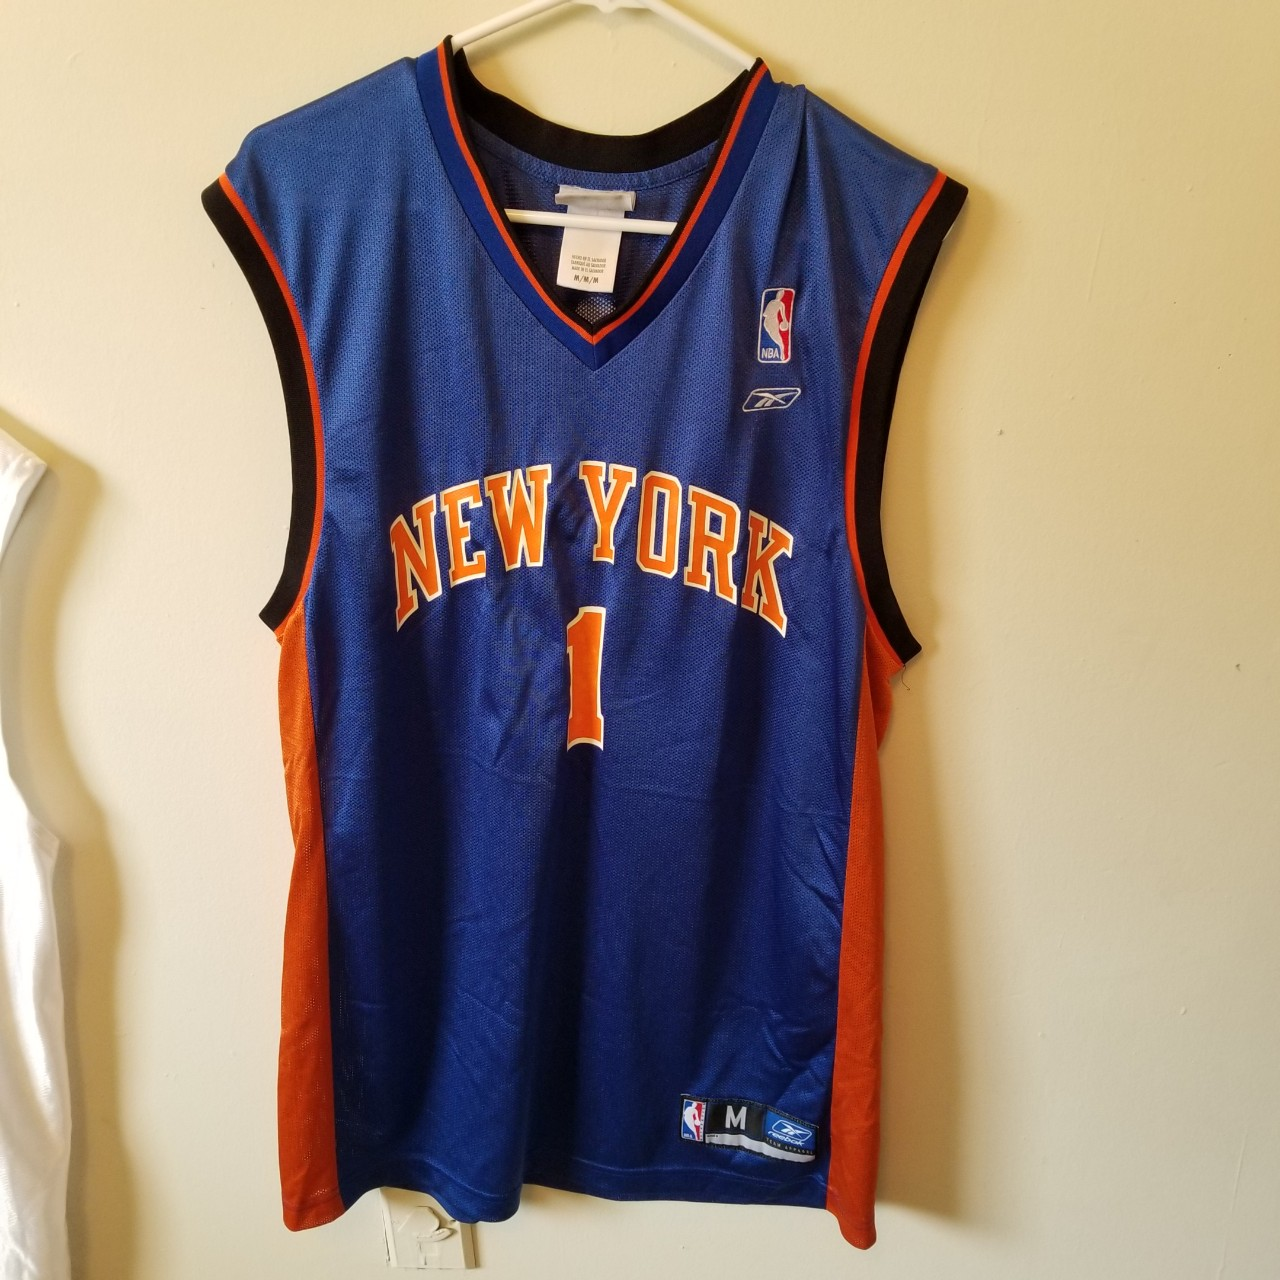 timeless design 46121 ce298 New York Knicks #1 Jersey - Size M The jersey is in... - Depop